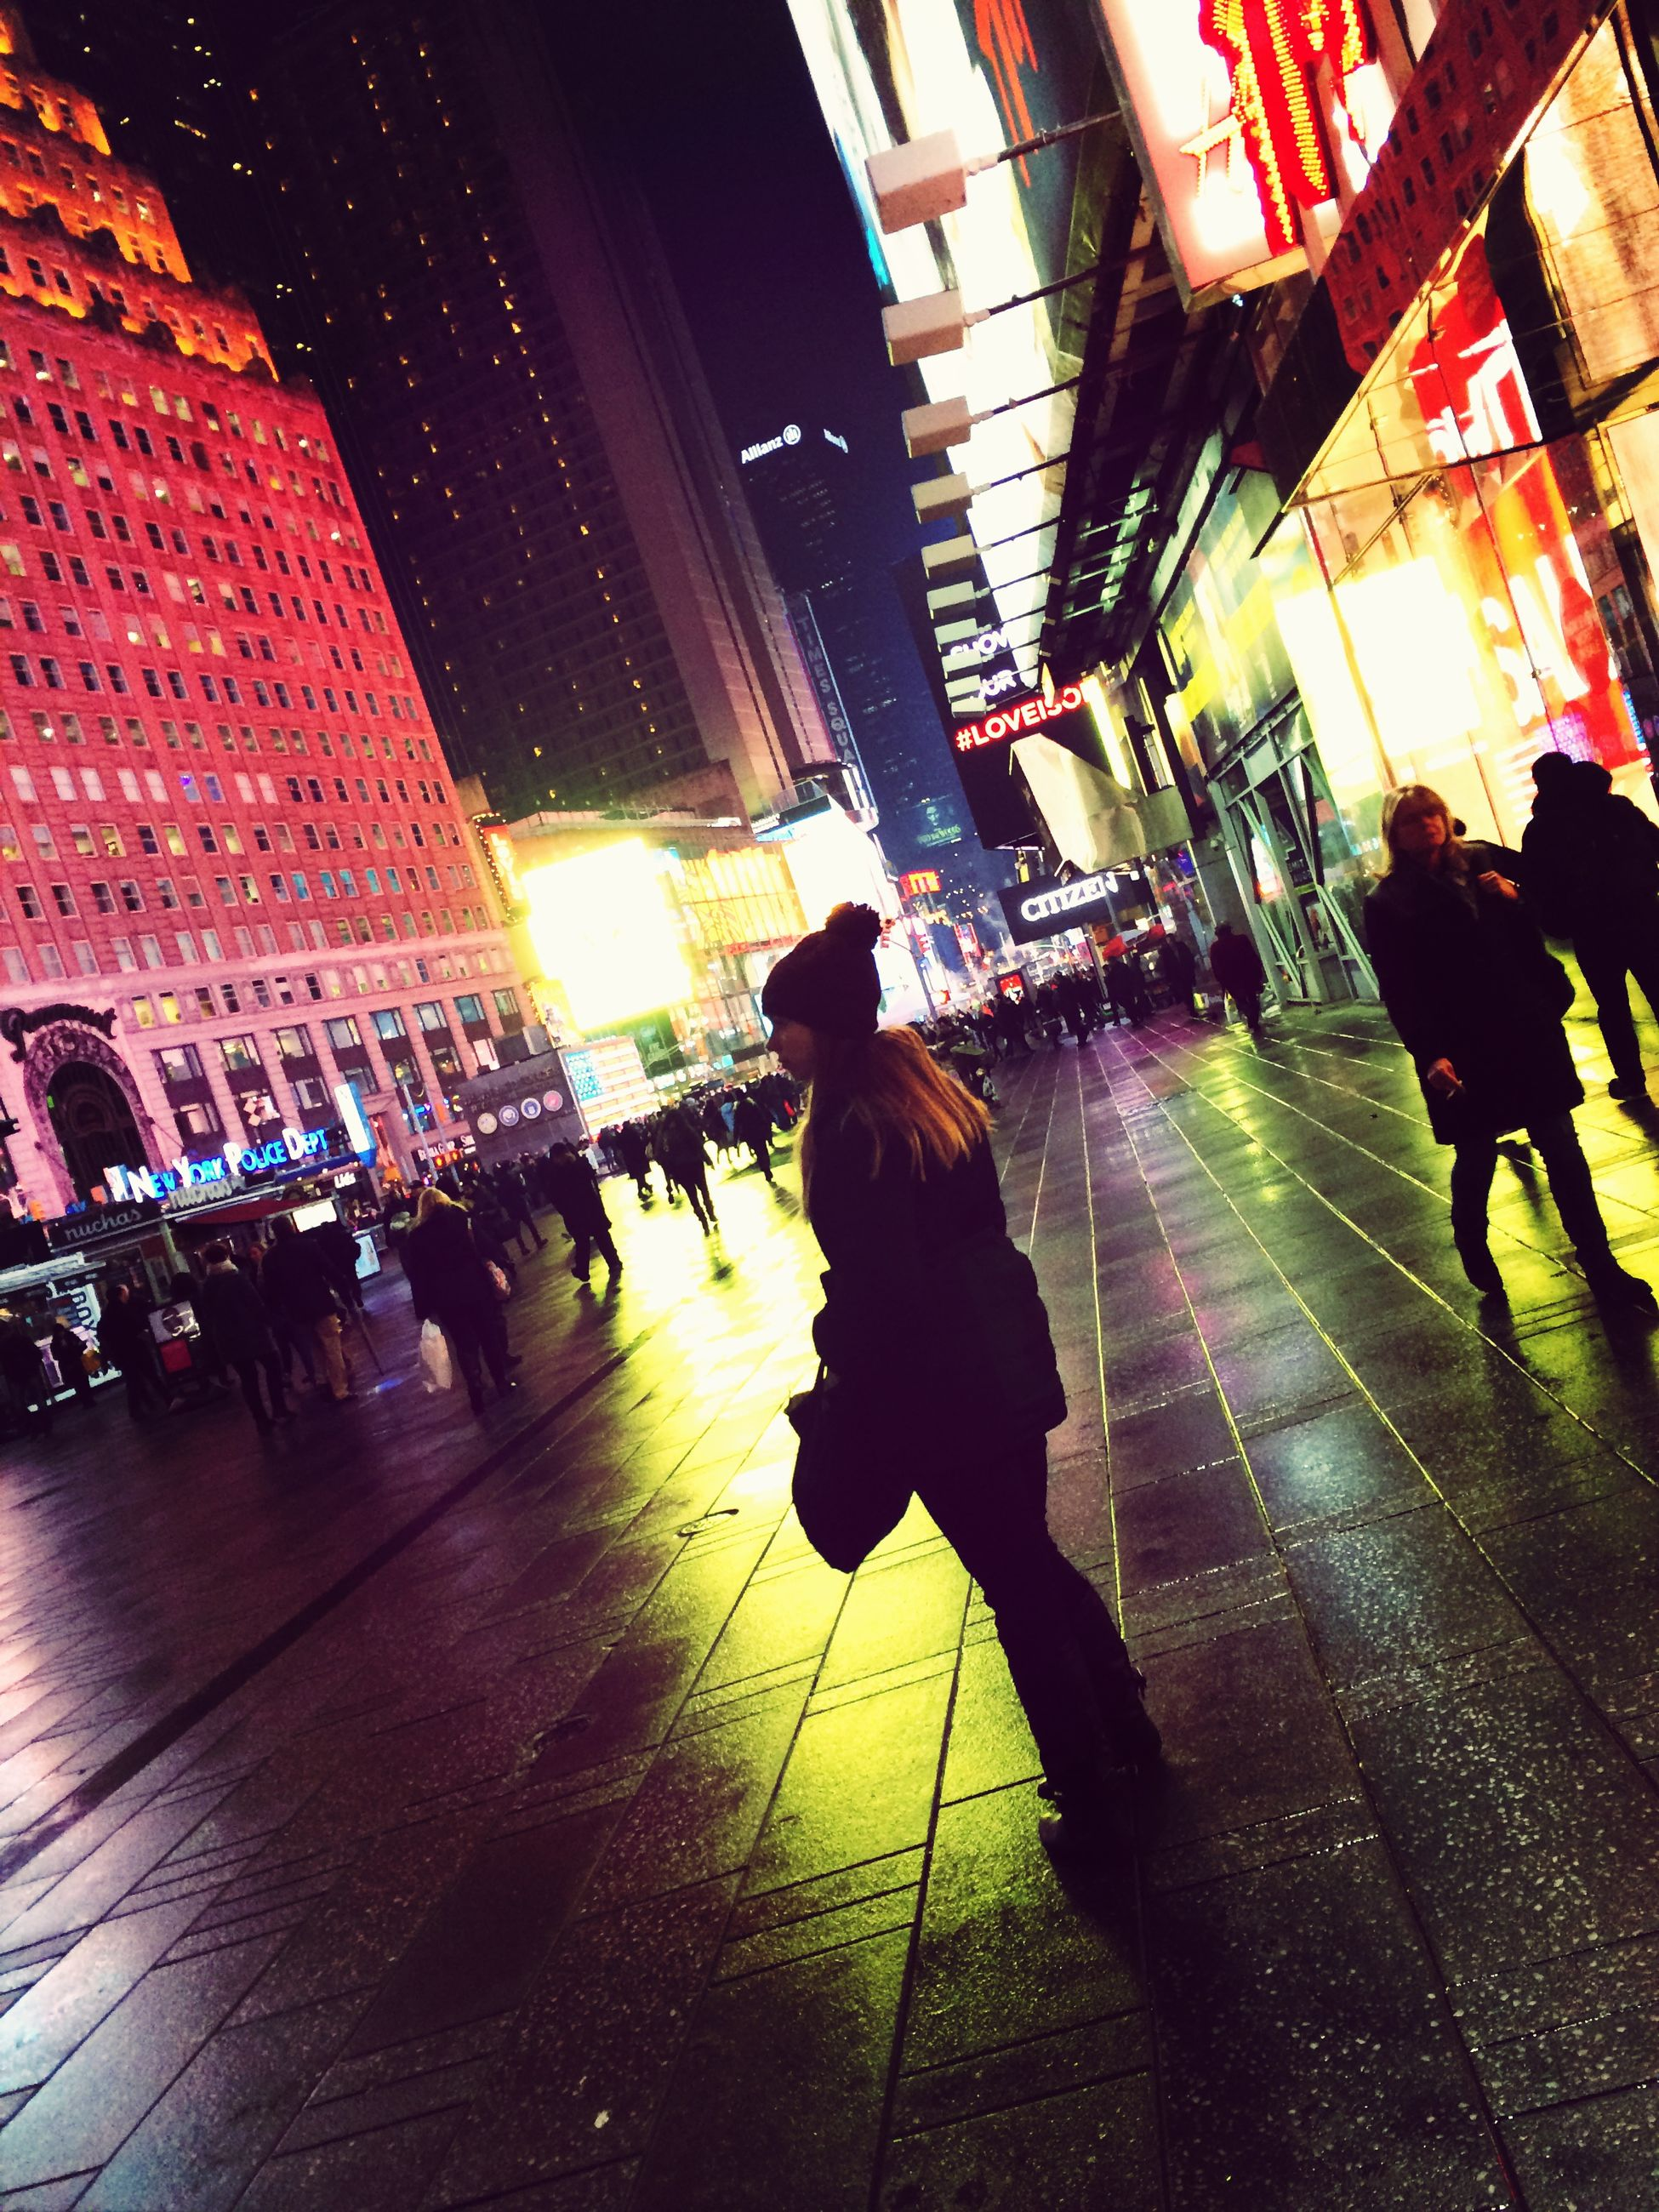 architecture, building exterior, lifestyles, built structure, walking, men, person, night, illuminated, city, street, city life, leisure activity, full length, large group of people, building, umbrella, shadow, standing